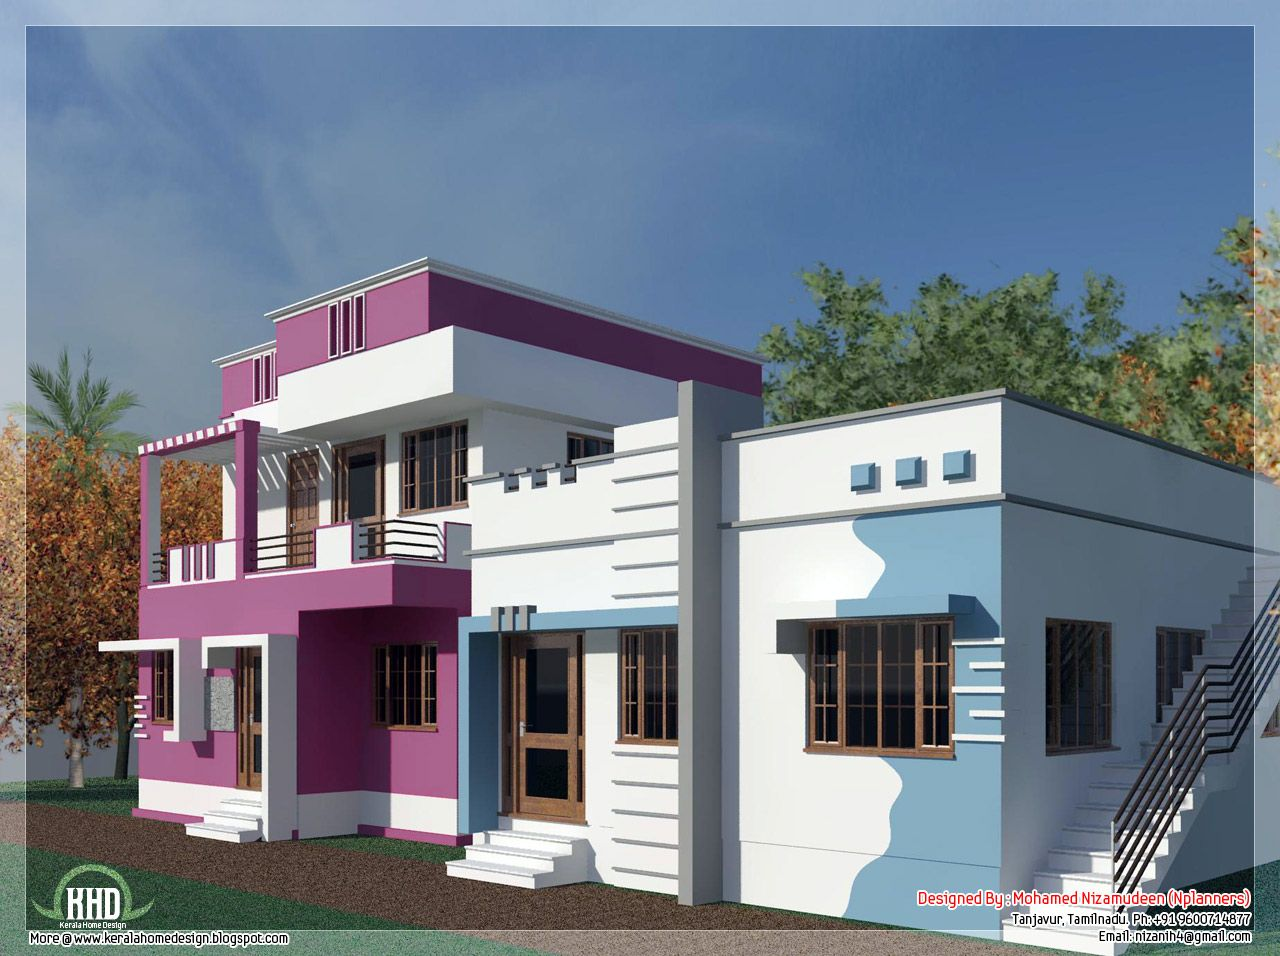 Tamilnadu model home design in 3000 kerala home for 3000 sq ft house plans kerala style